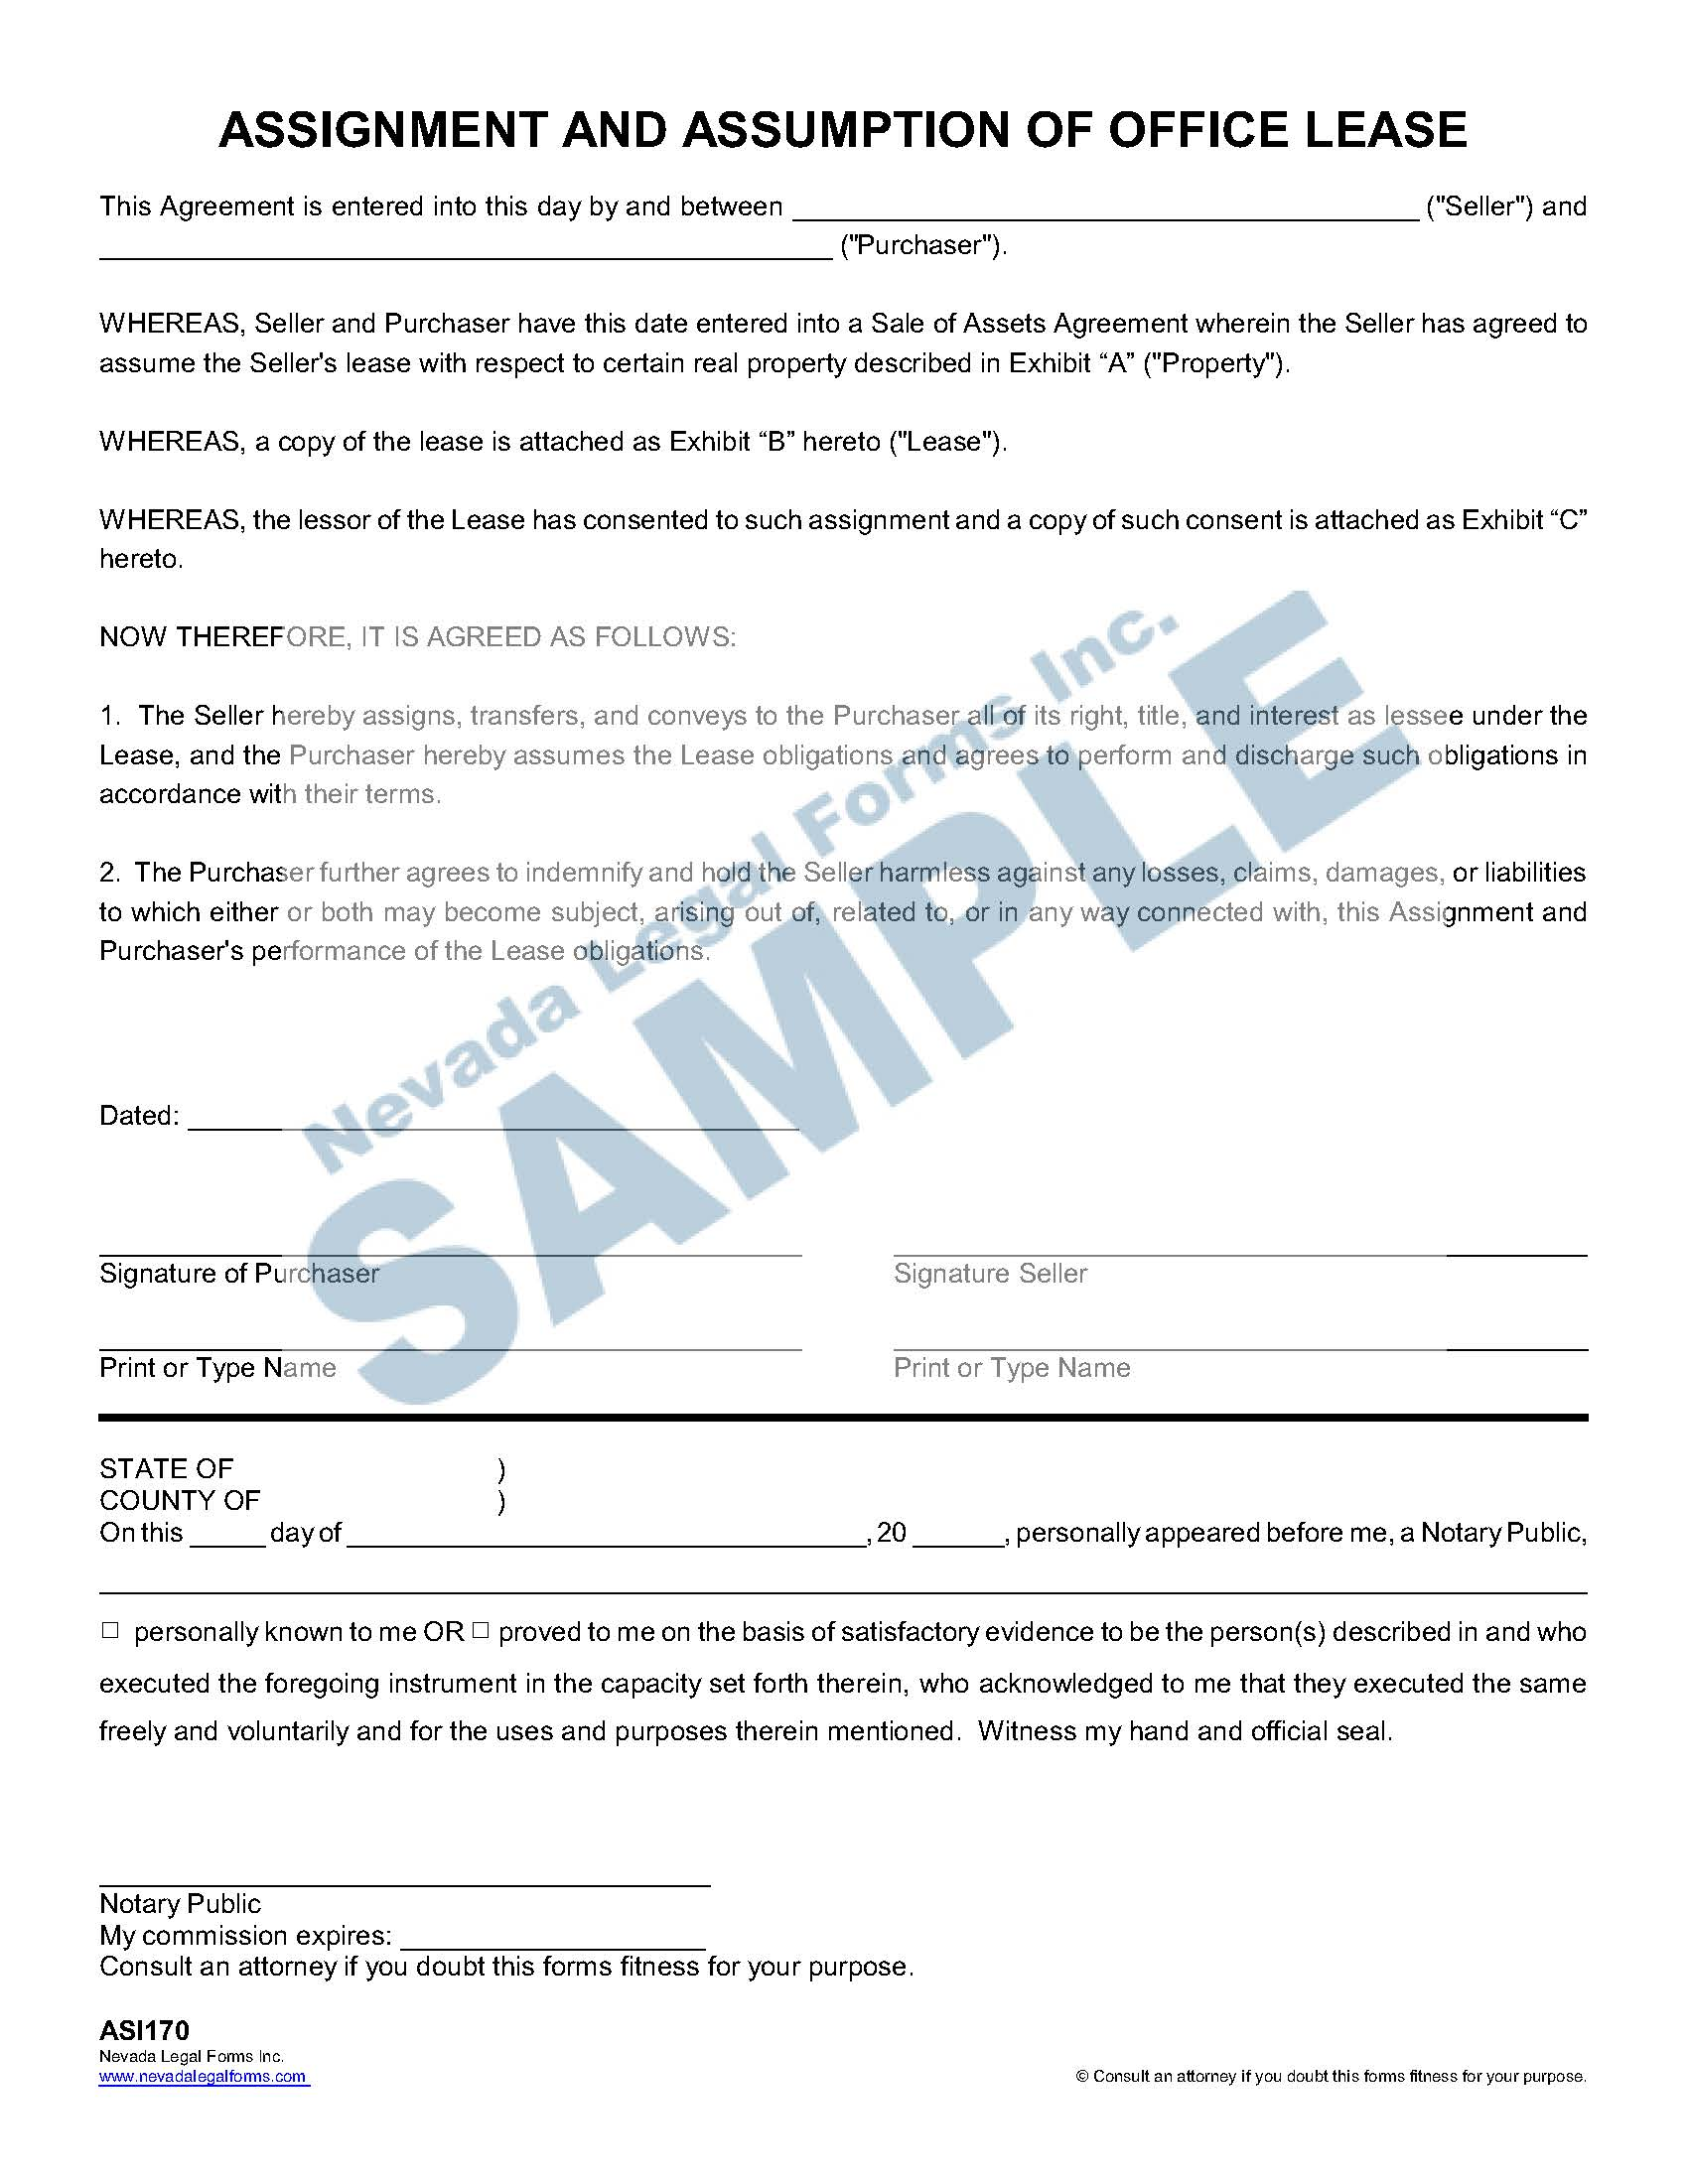 Assignment And Assumption Of Office Lease